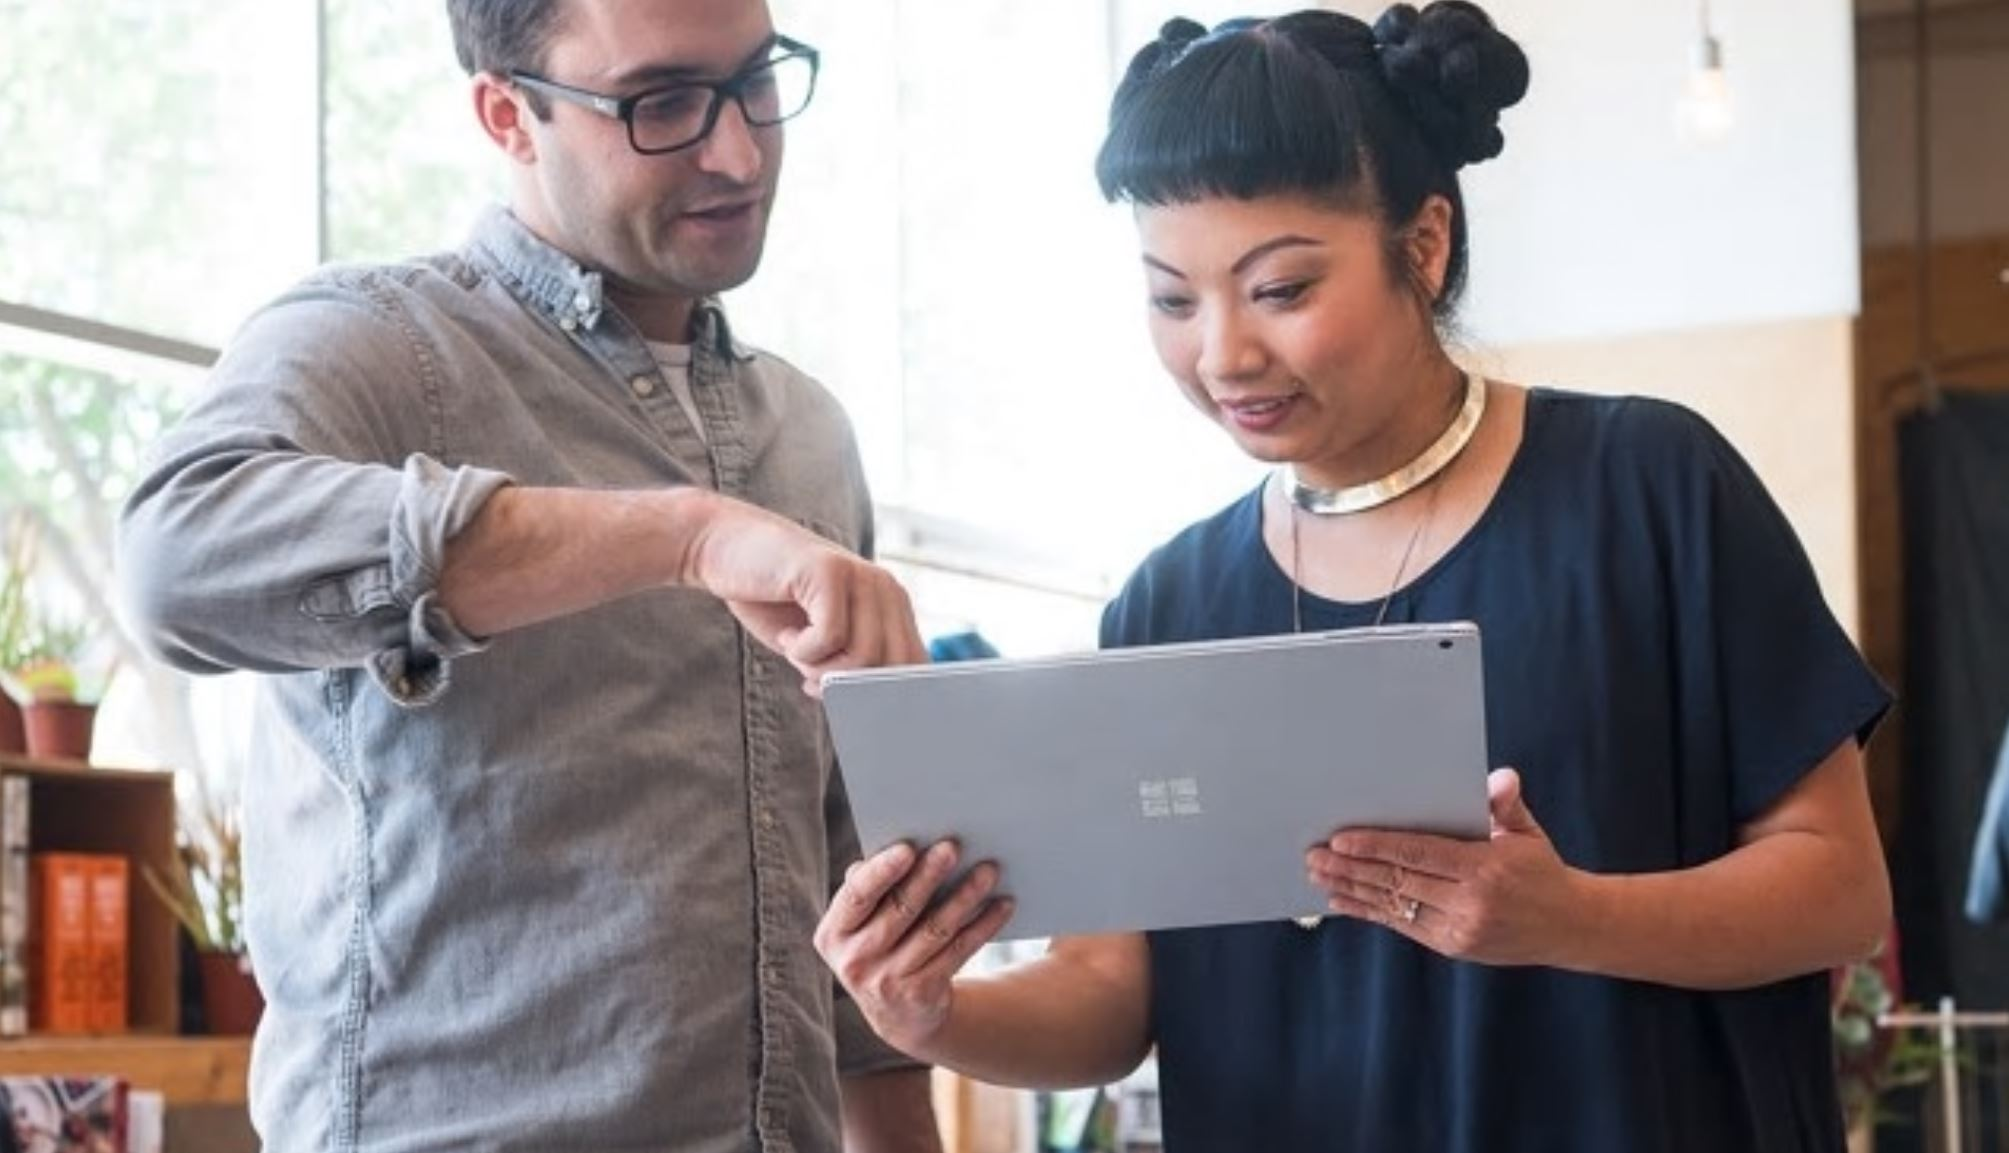 Microsoft Office 2010 extended support will end in one year, switch to Office 365 ProPlus